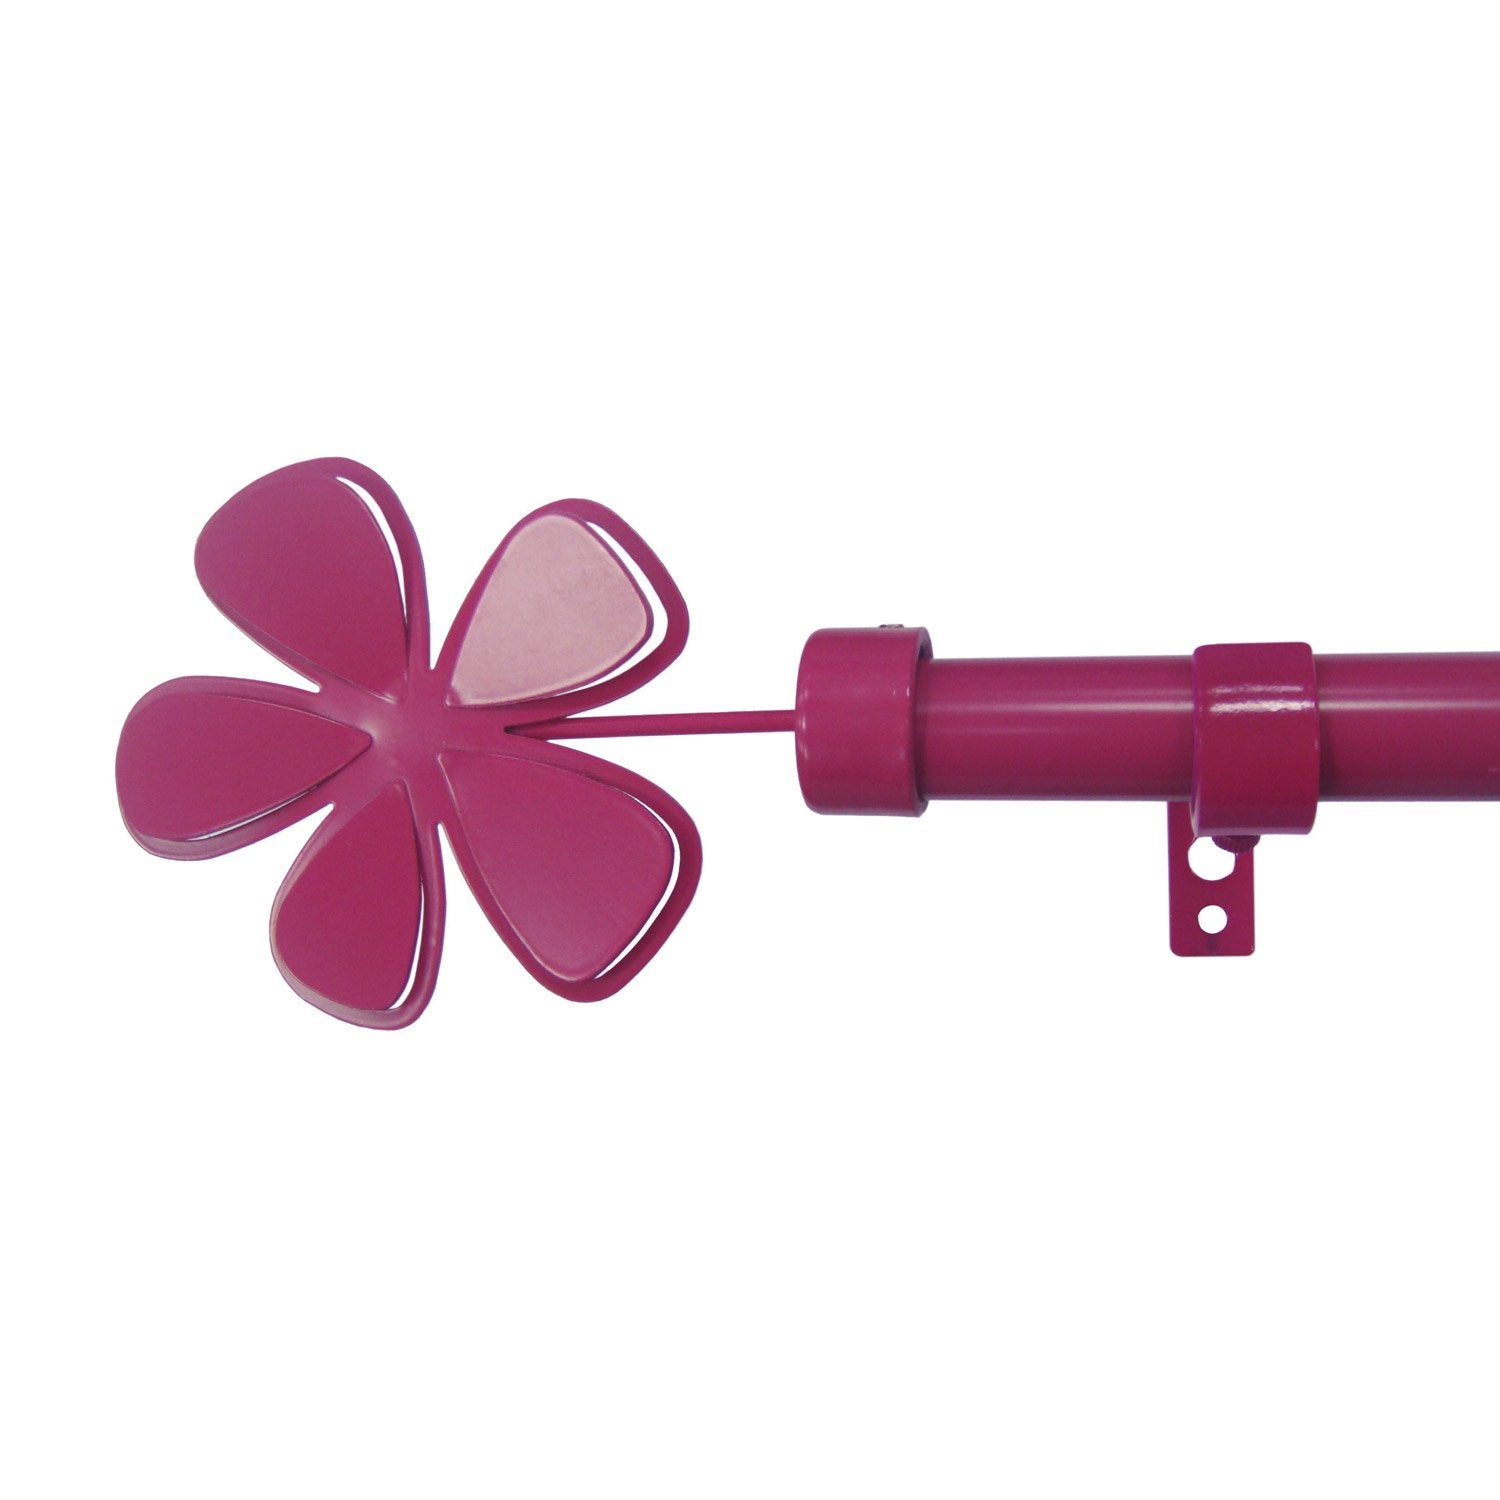 Kit de tringle rideau extensible roseshoc rose - Tringle a rideau leroy merlin ...